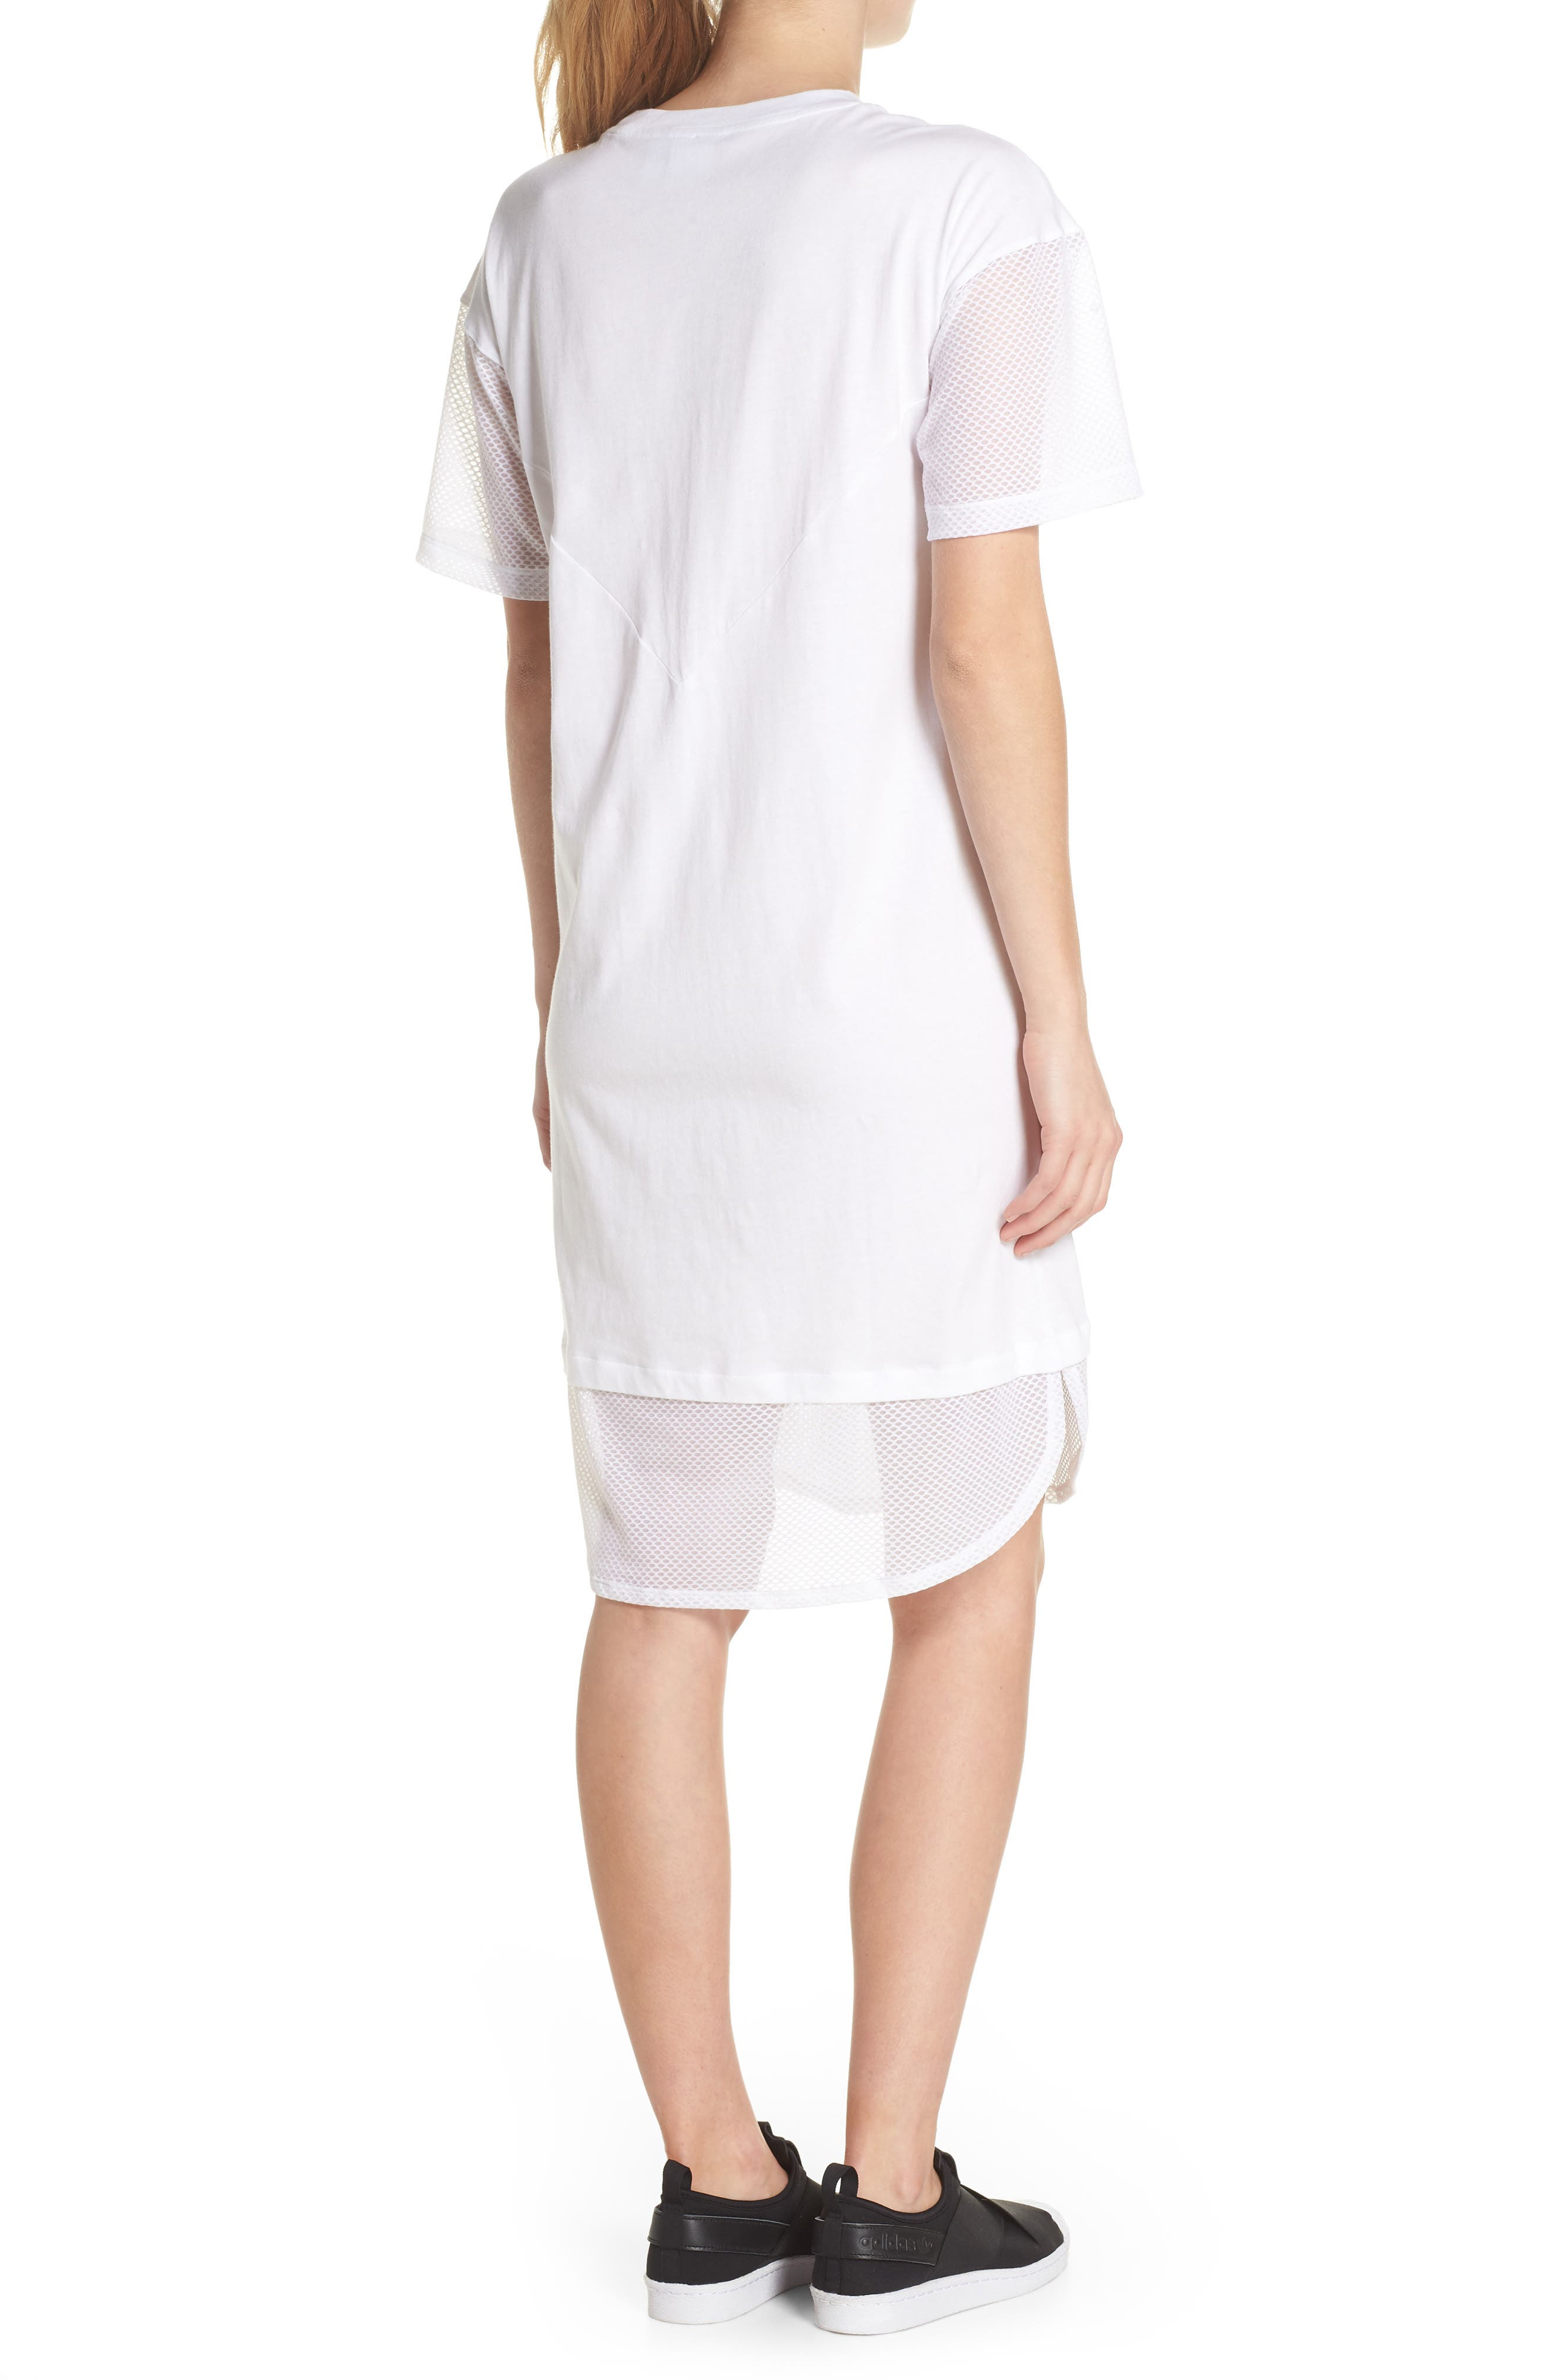 CLRDO T-Shirt Dress,                             Alternate thumbnail 2, color,                             White